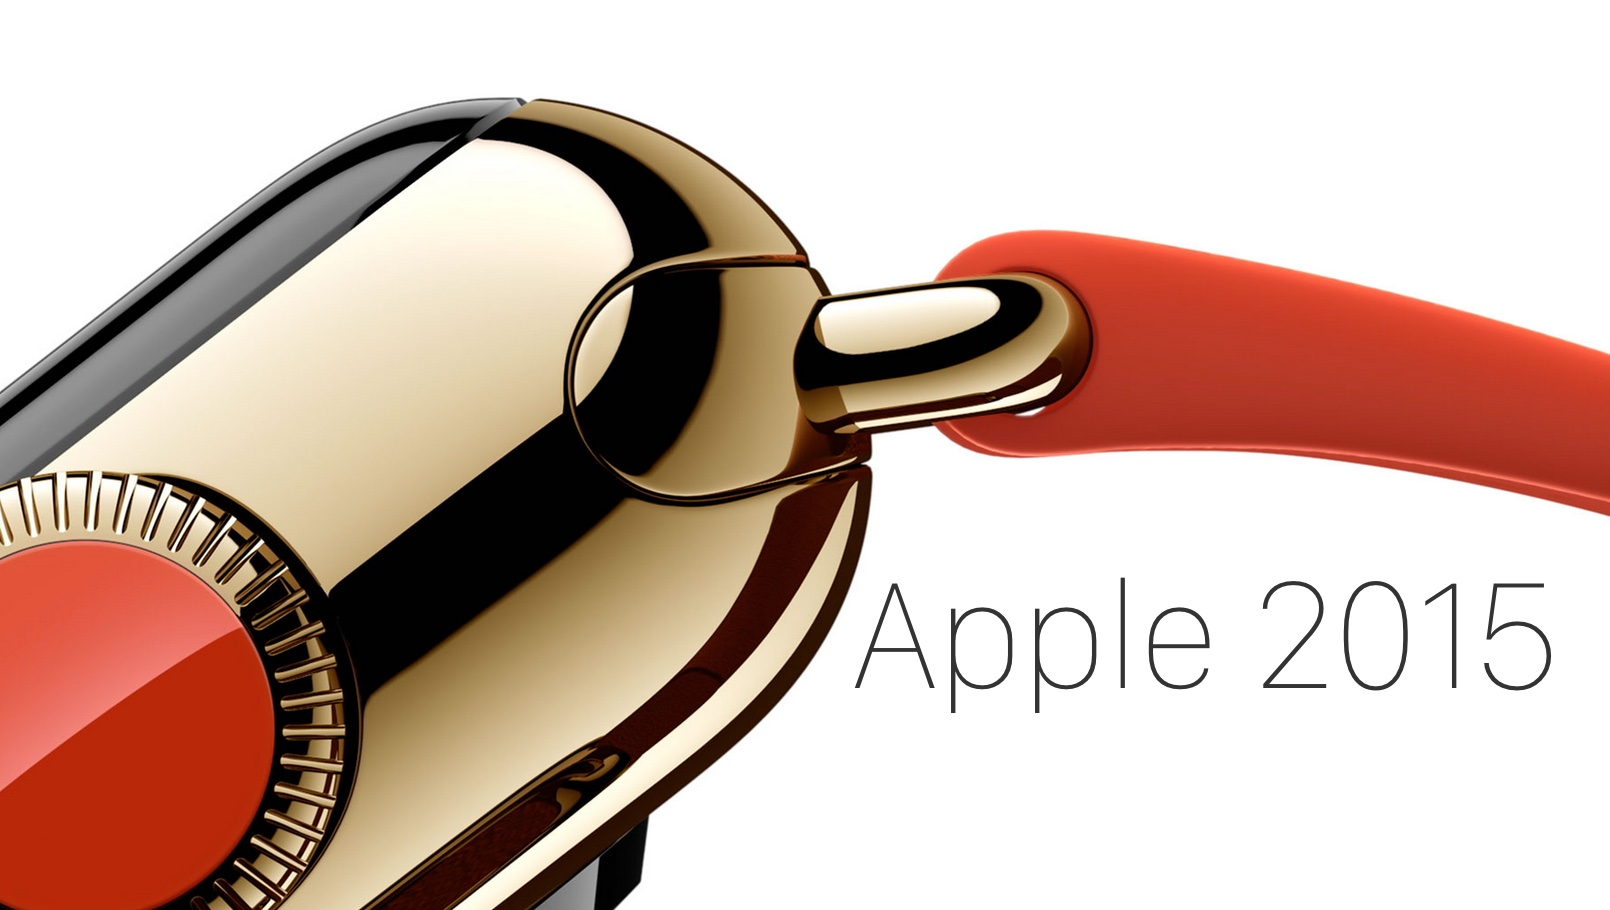 2015 preview: What to expect from Apple this year